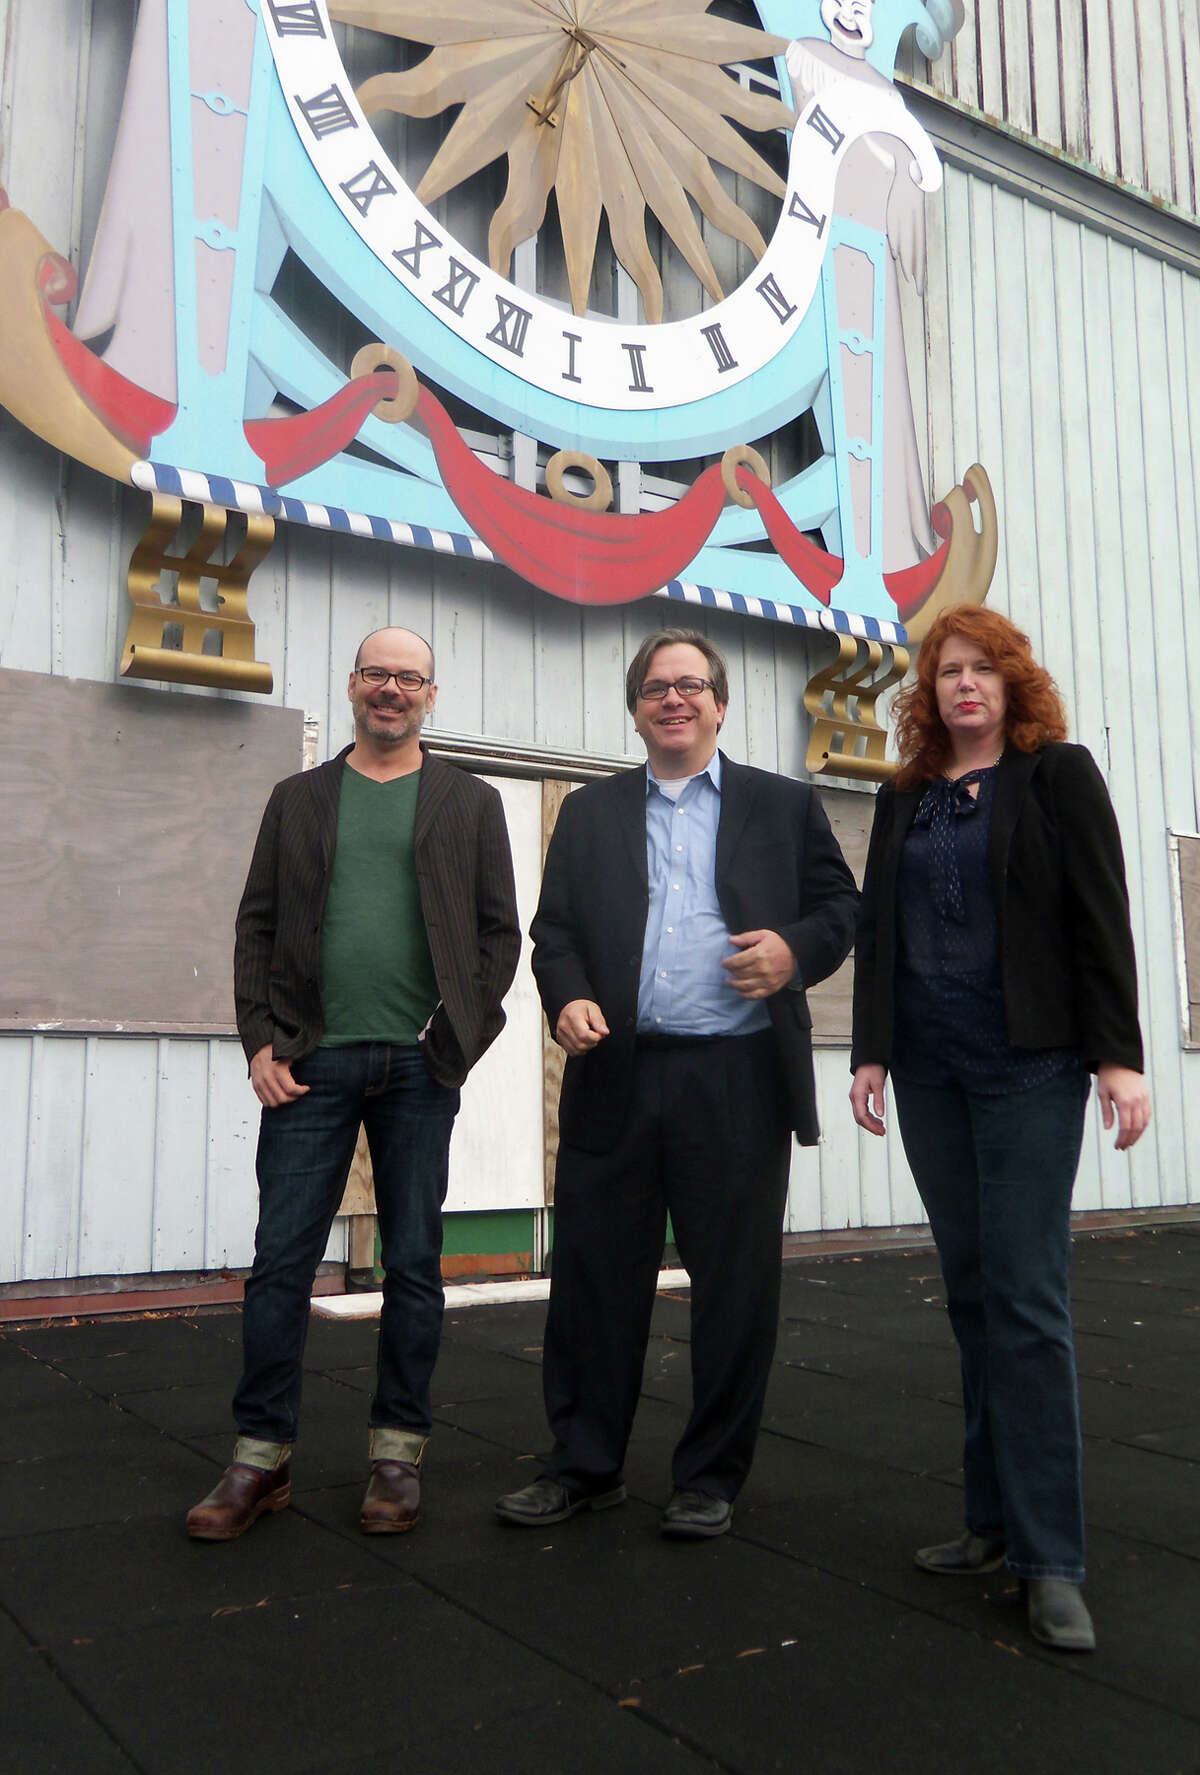 Bob Kennedy, Frank Farricker and Suzanne Cahill stand at the long-shuttered American Shakespeare Festival Theatre in Stratford. Their group, the Elm Street Theatre Company, is seeking approval from the Town Council to restore and operate the theater.